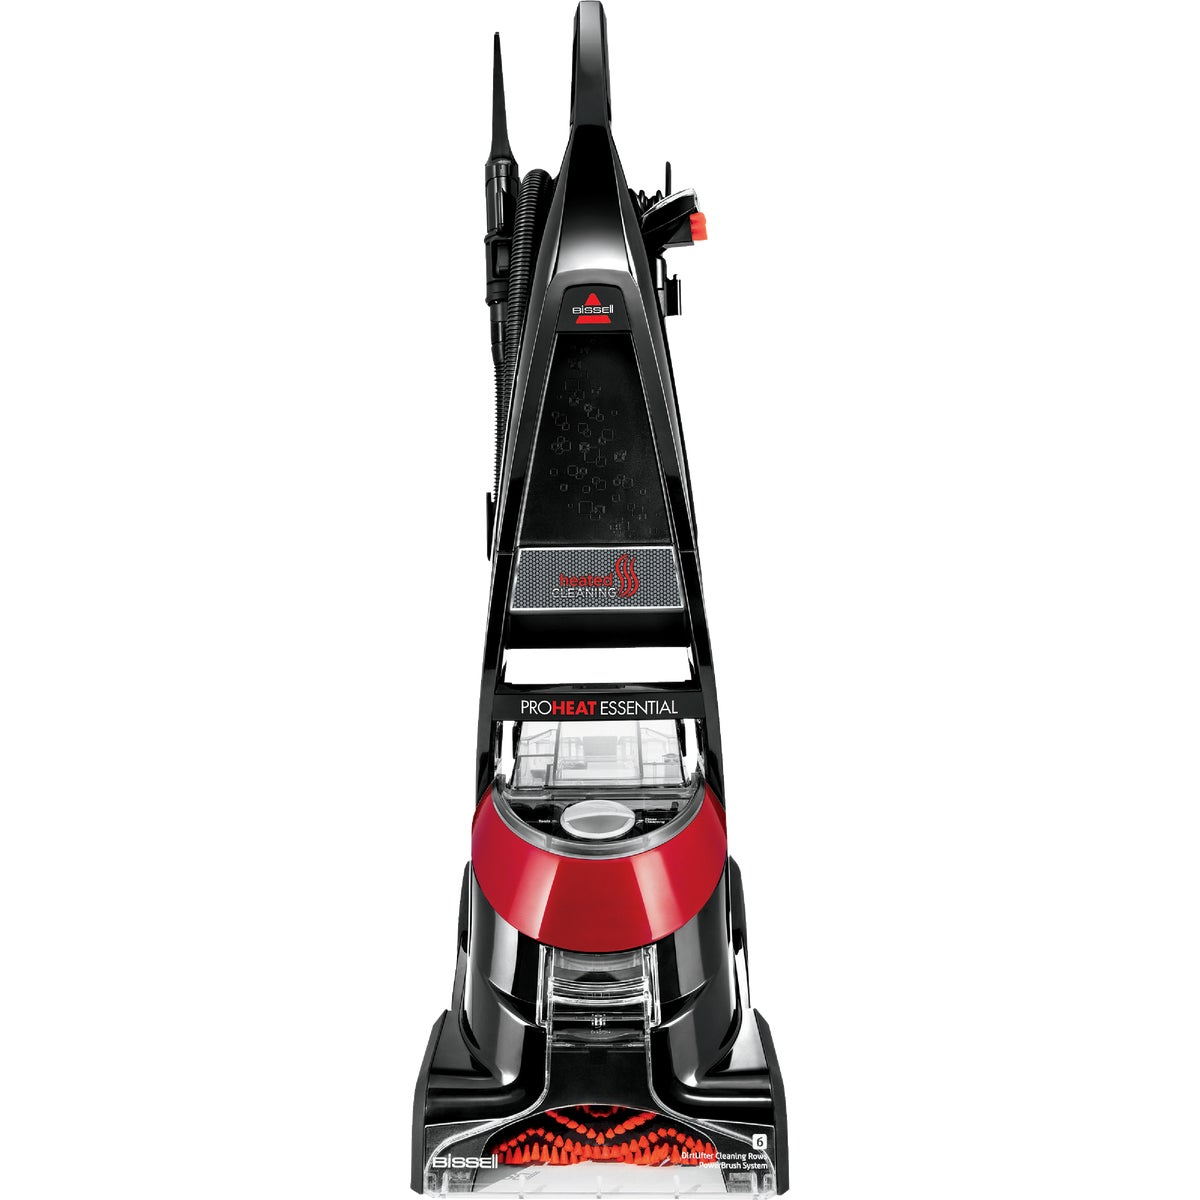 UPRIGHT FLOOR CLEANER